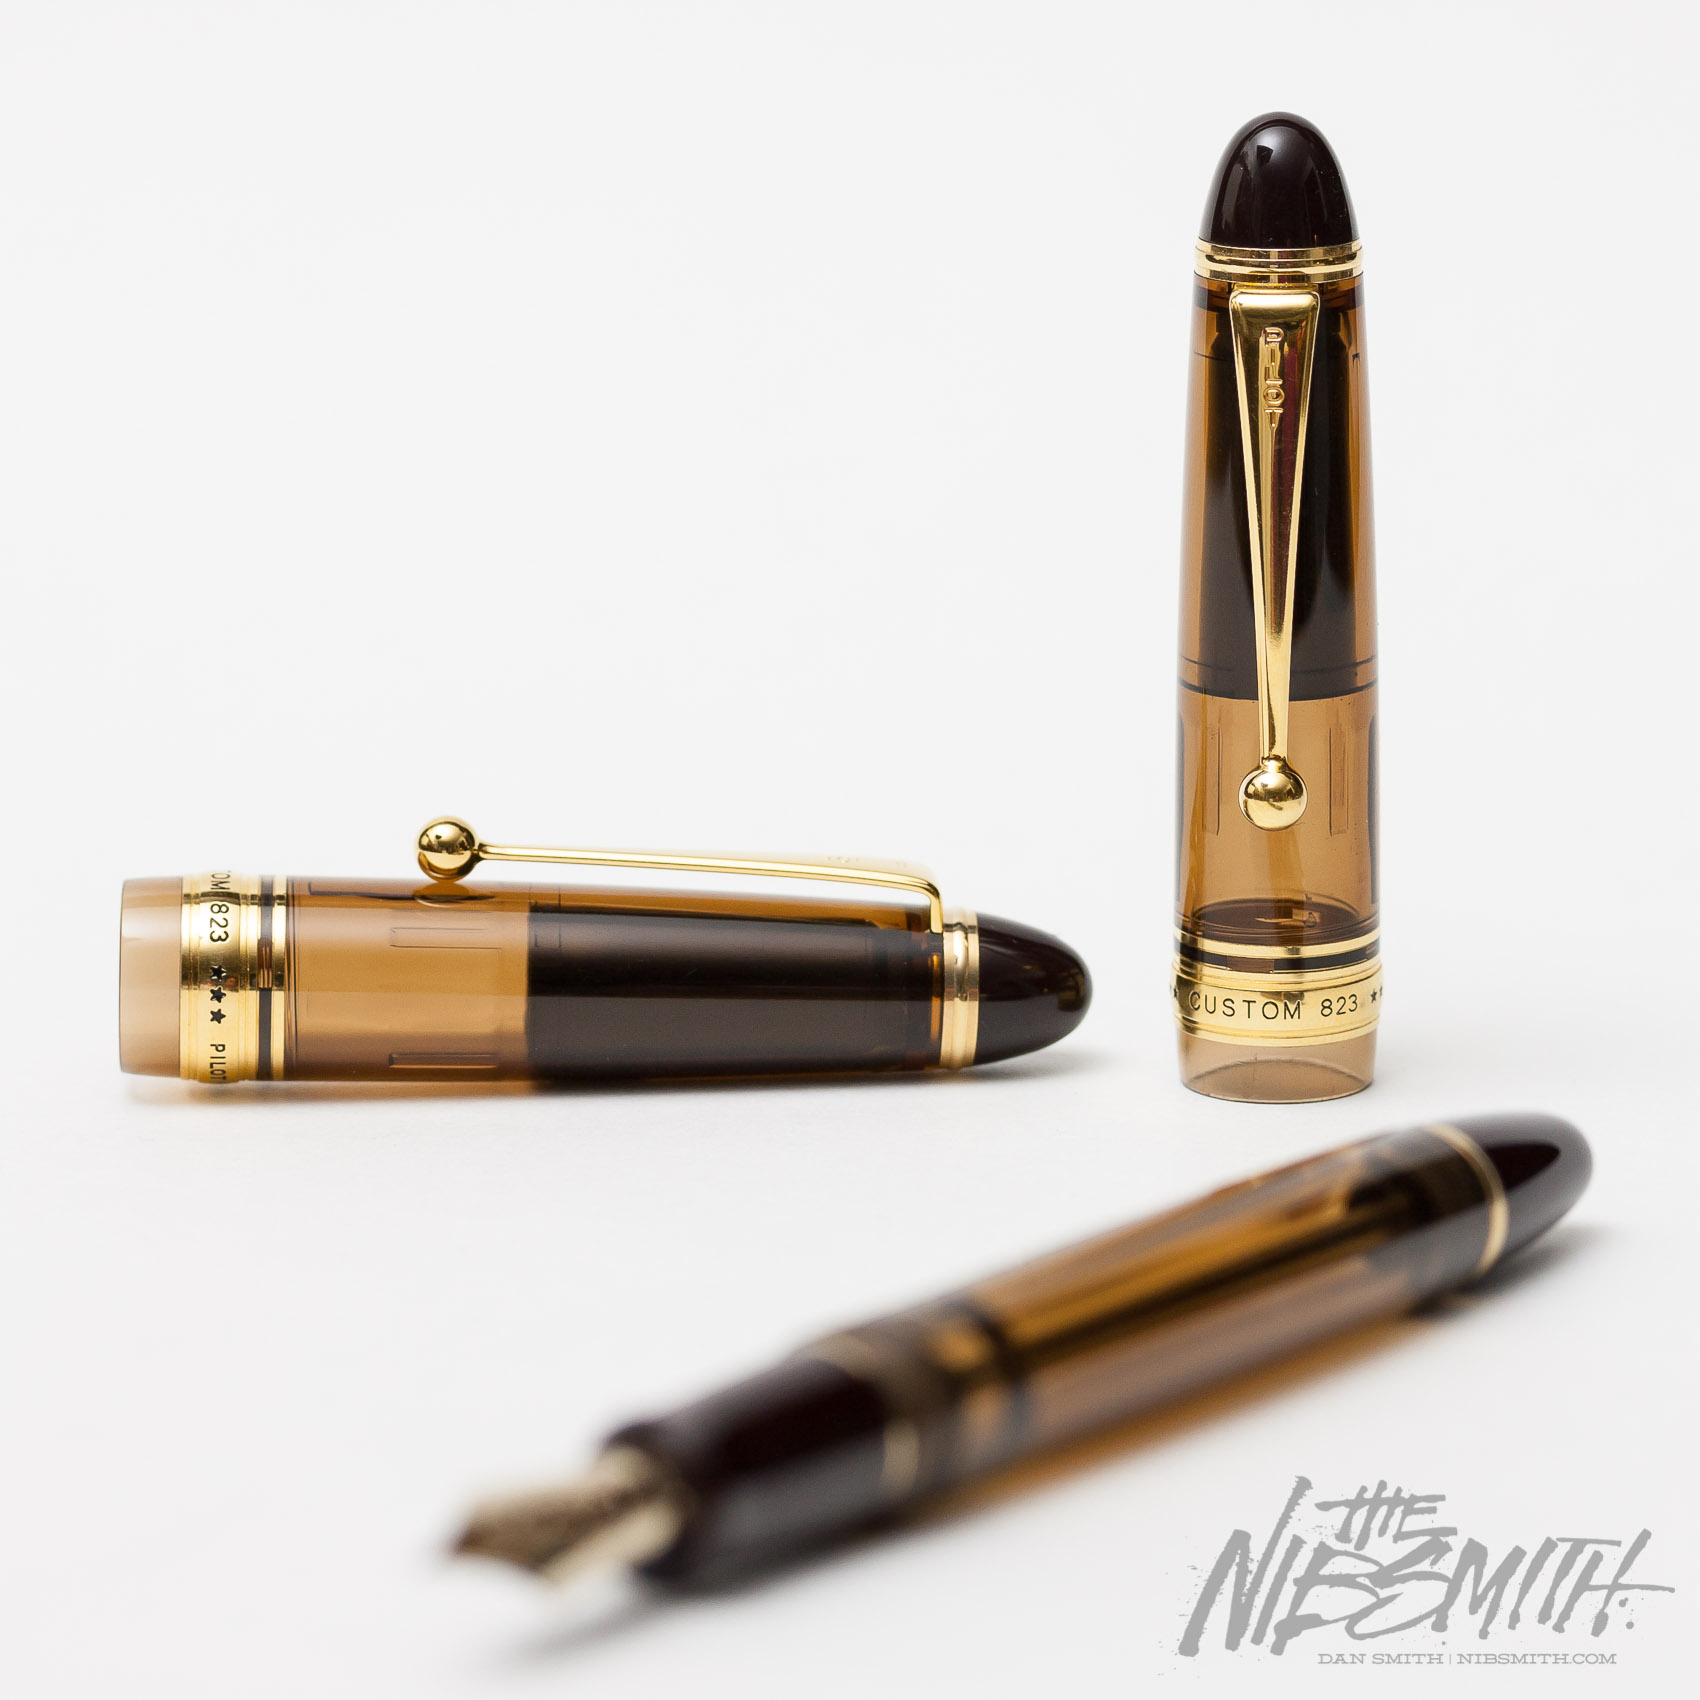 pilot_custom_823_fountain_pen_nibsmith-34